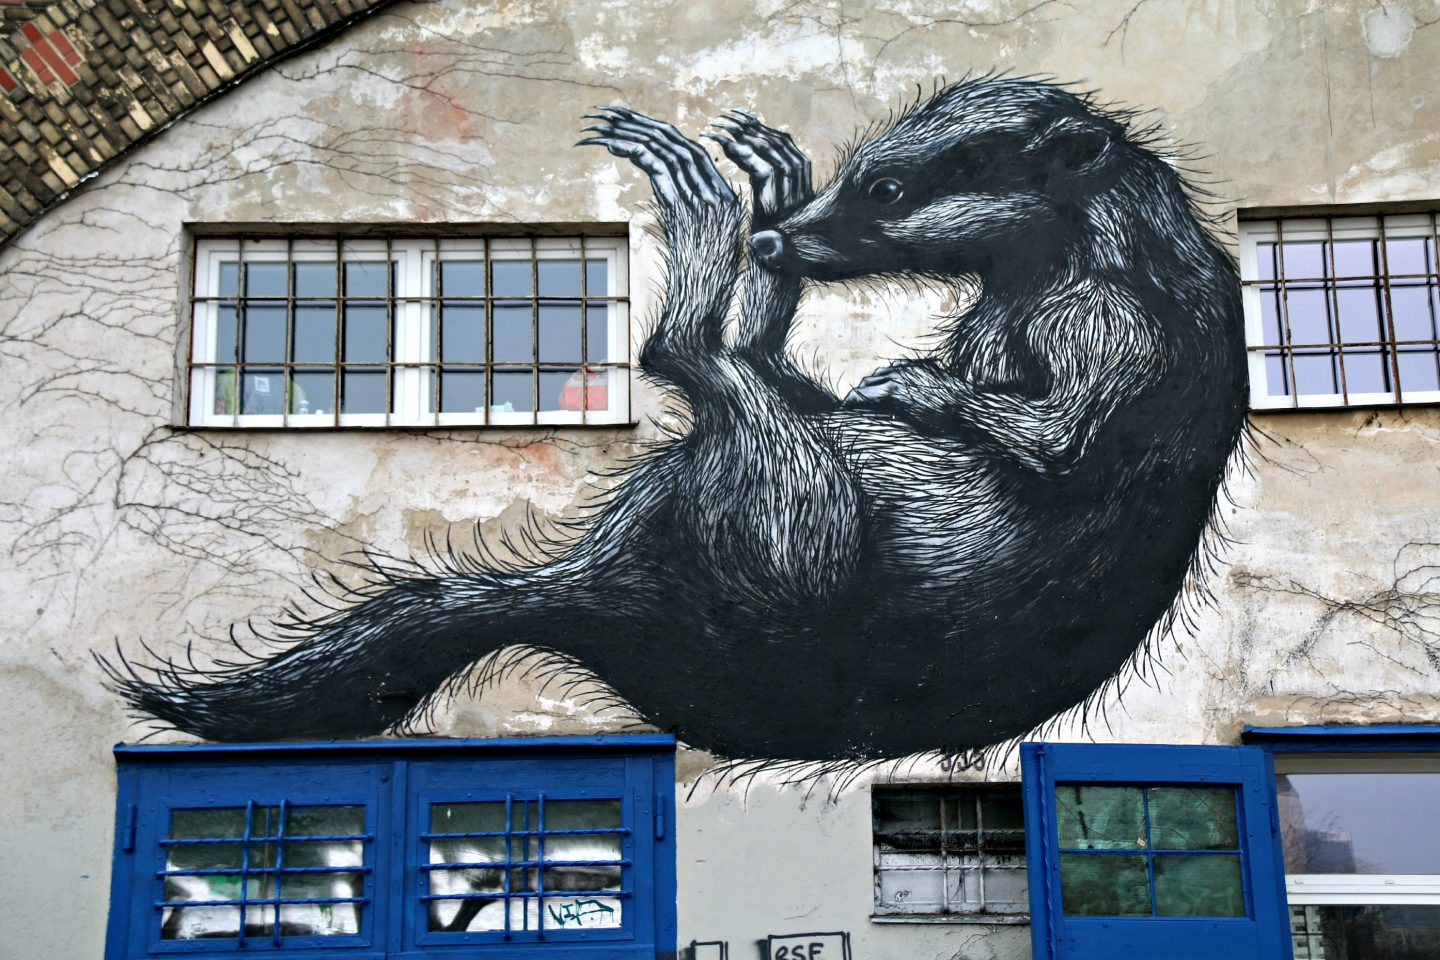 Vienna street art by the canal Roa